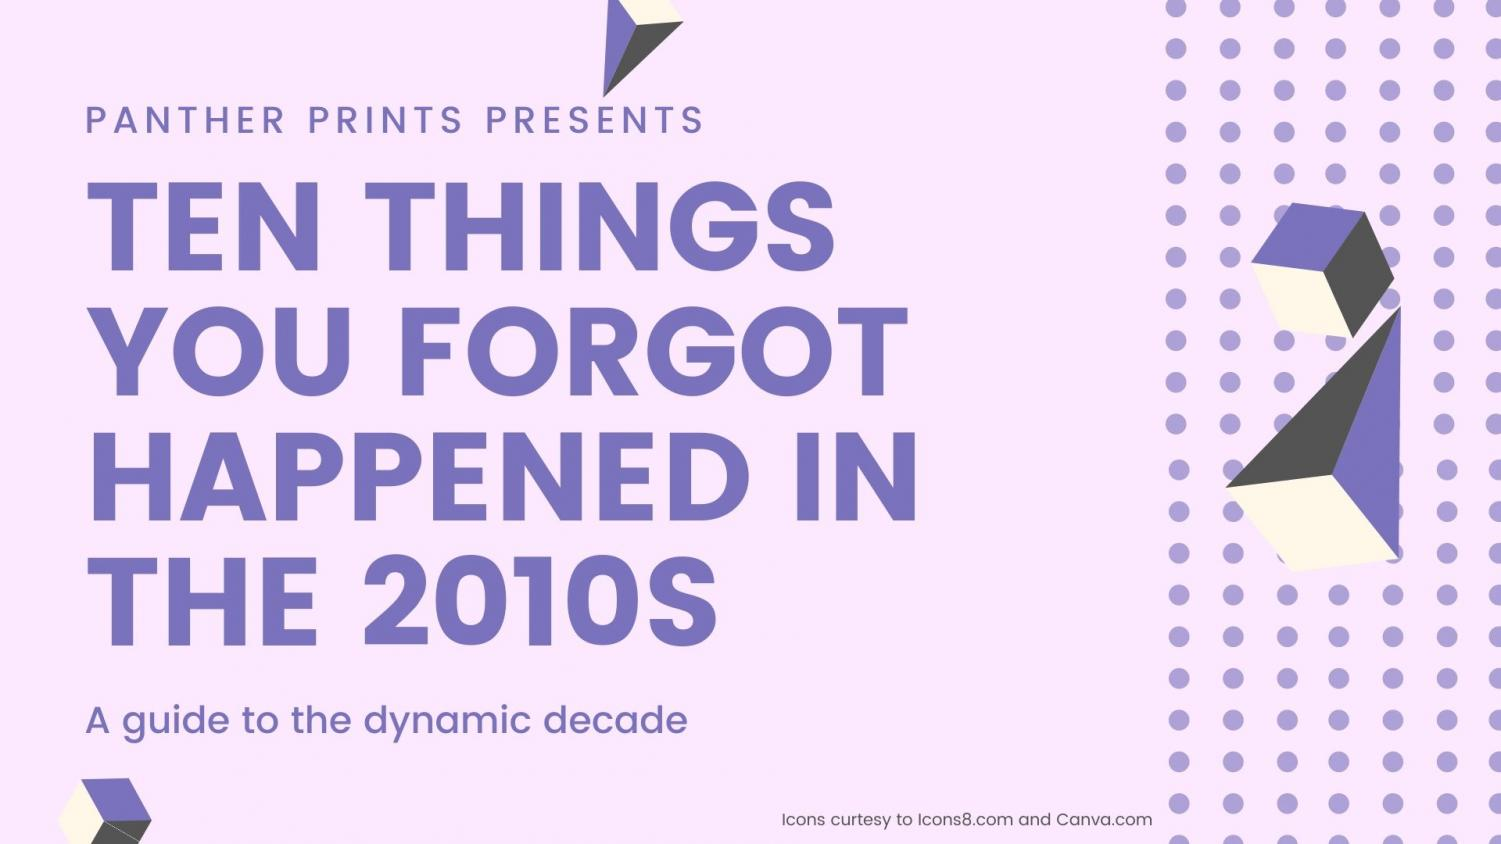 Ten+things+you+forgot+happened+in+the+2010s